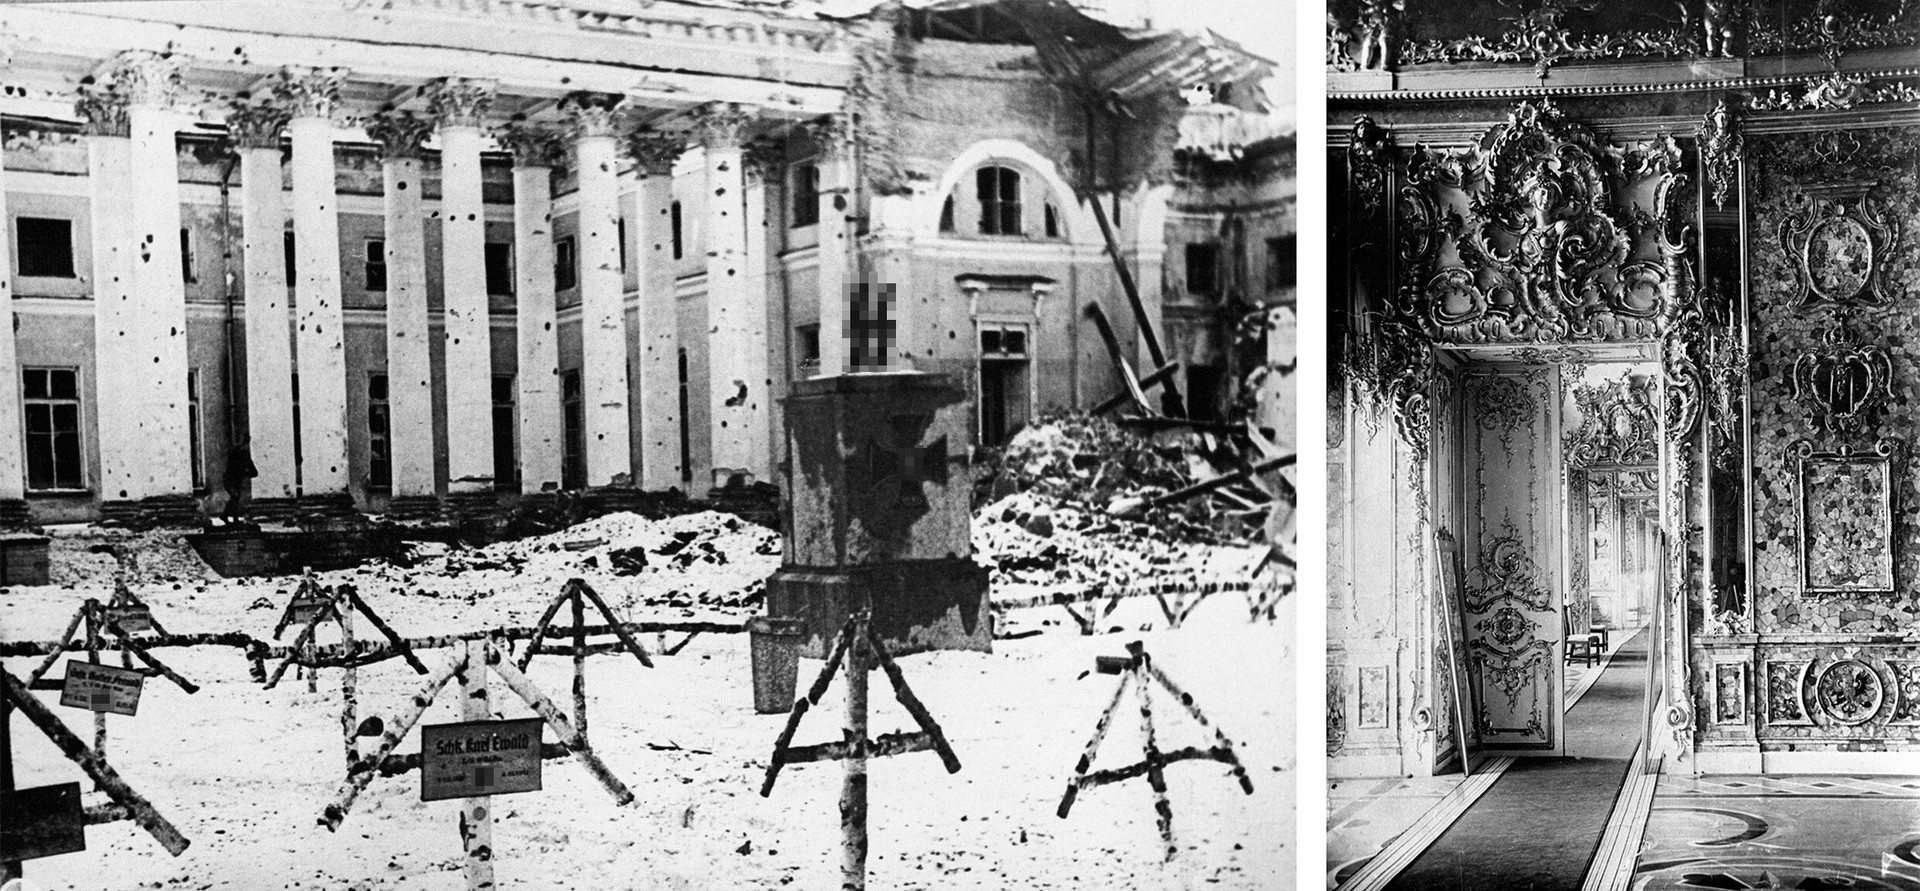 (L) The Alexander Palace in Tsarskoe Selo, near Leningrad (now St. Petersburg) after the liberation of the town by the Soviet troops; (R) The Amber Room of Catherine Palace before World War II